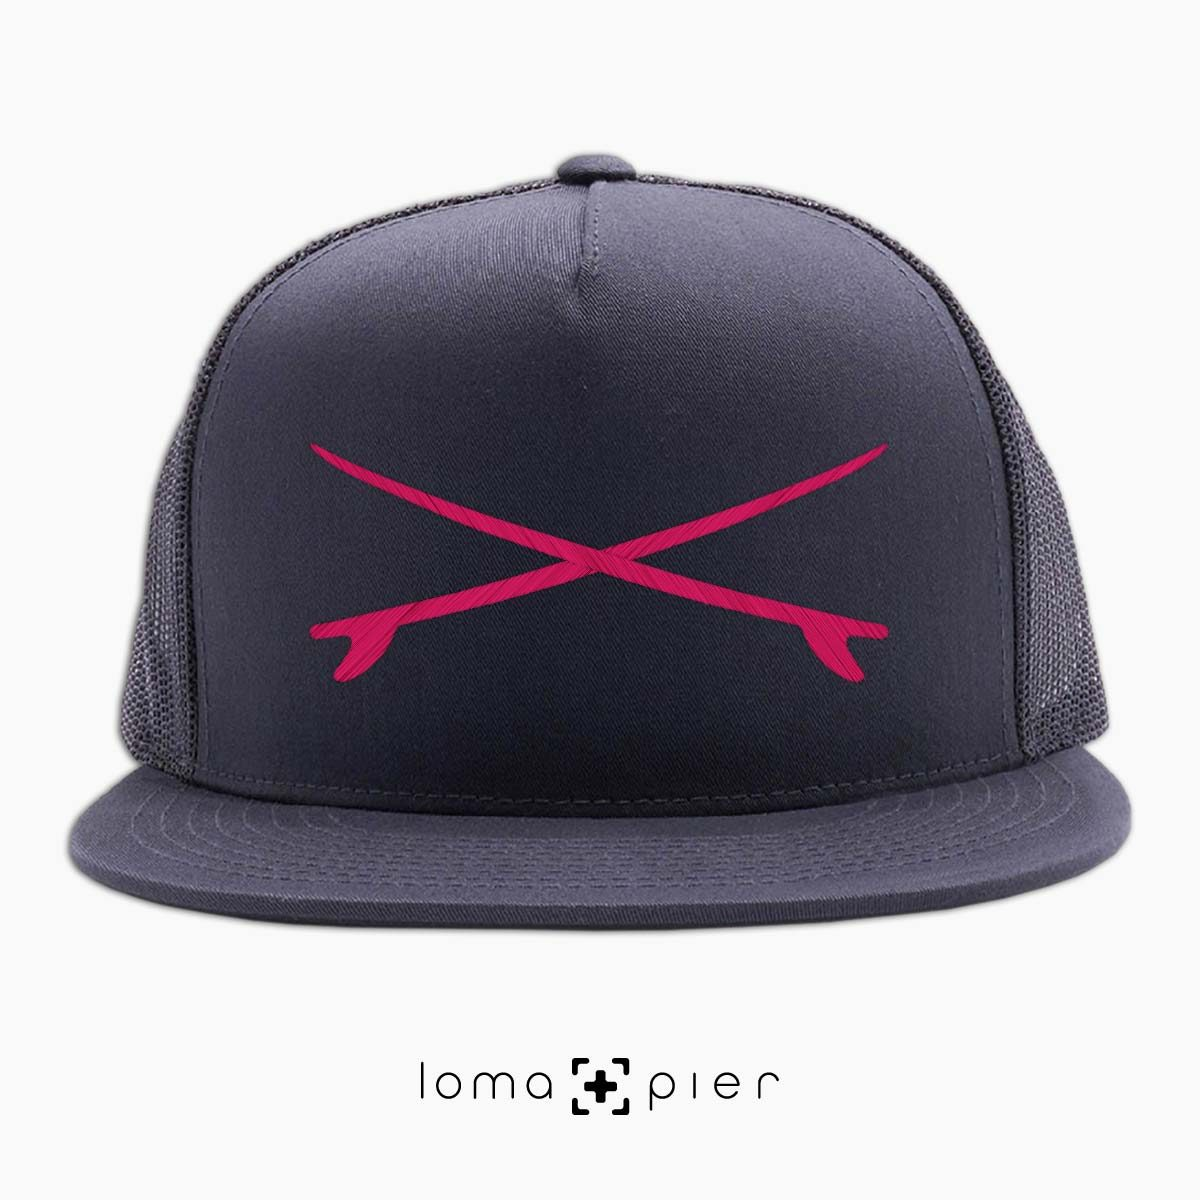 SURFBOARDS el porto beach netback hat in charcoal by loma+pier hat store